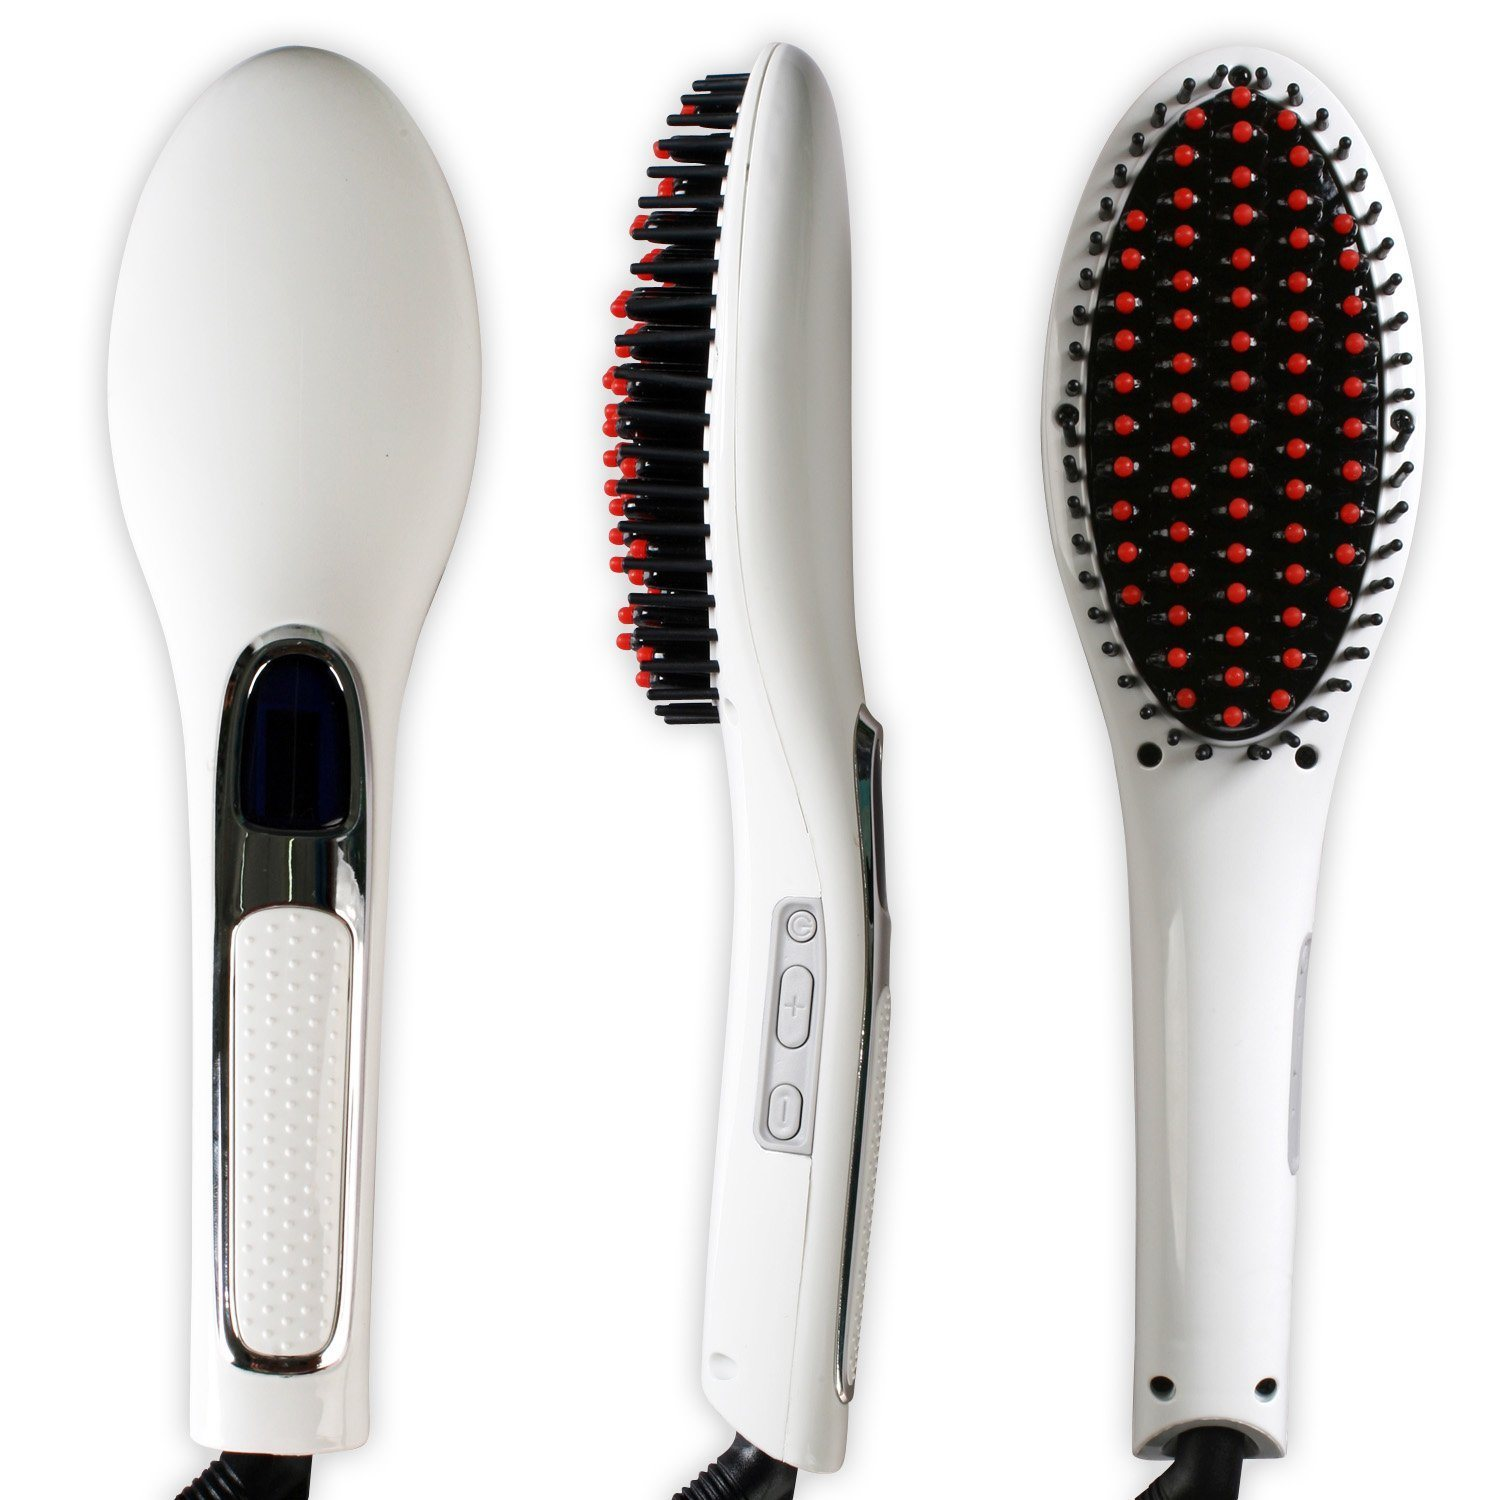 Brush Hair Straightener Comb Irons Come with LCD